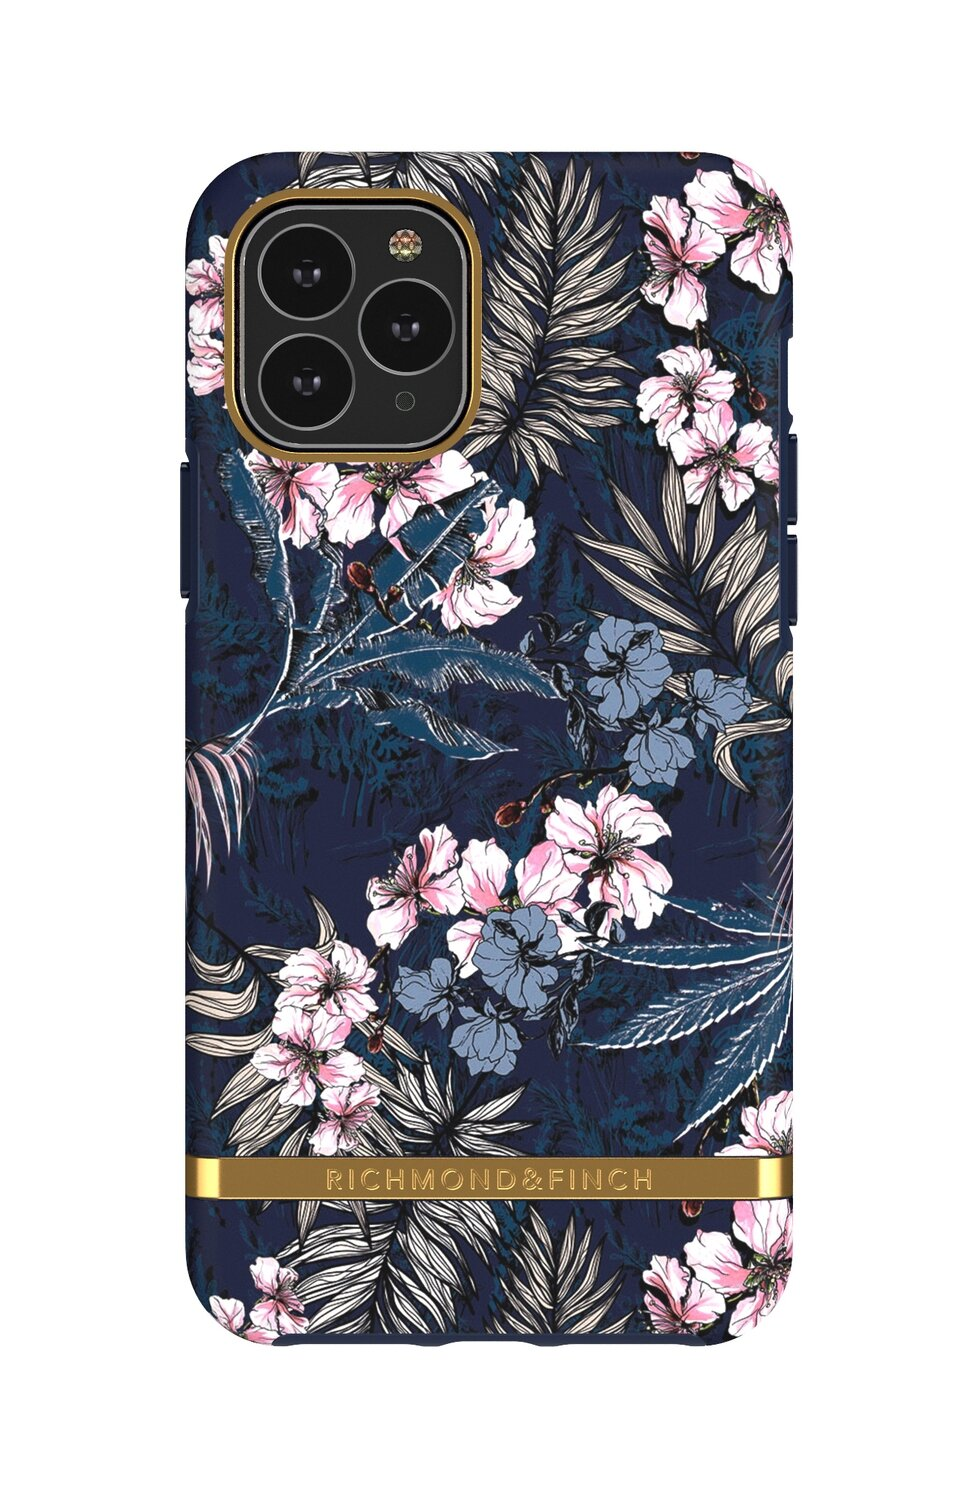 Richmond & Finch Floral Jungle for iPhone 11 Pro Max GOLD DETAILS